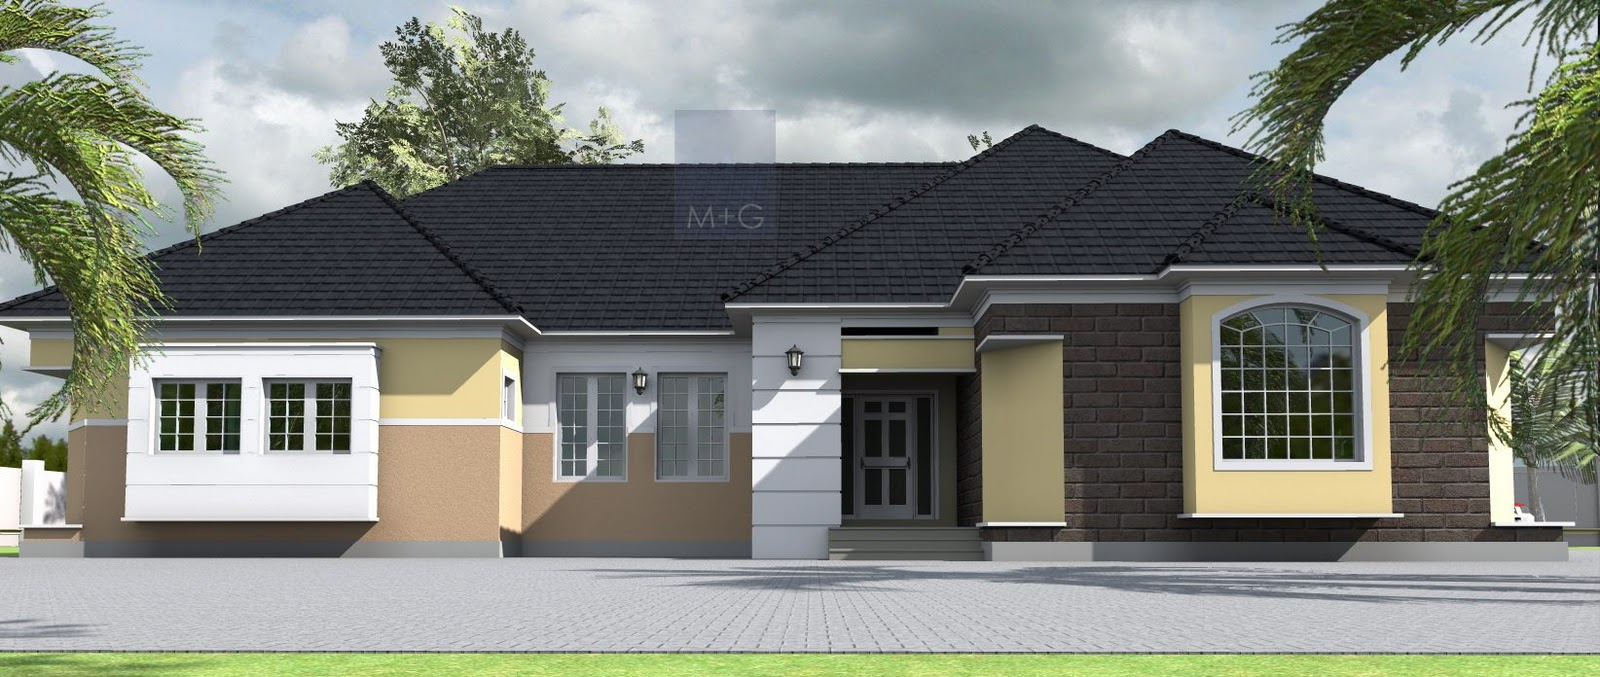 House plans and design architectural designs for 4 for Modern house designs in nigeria